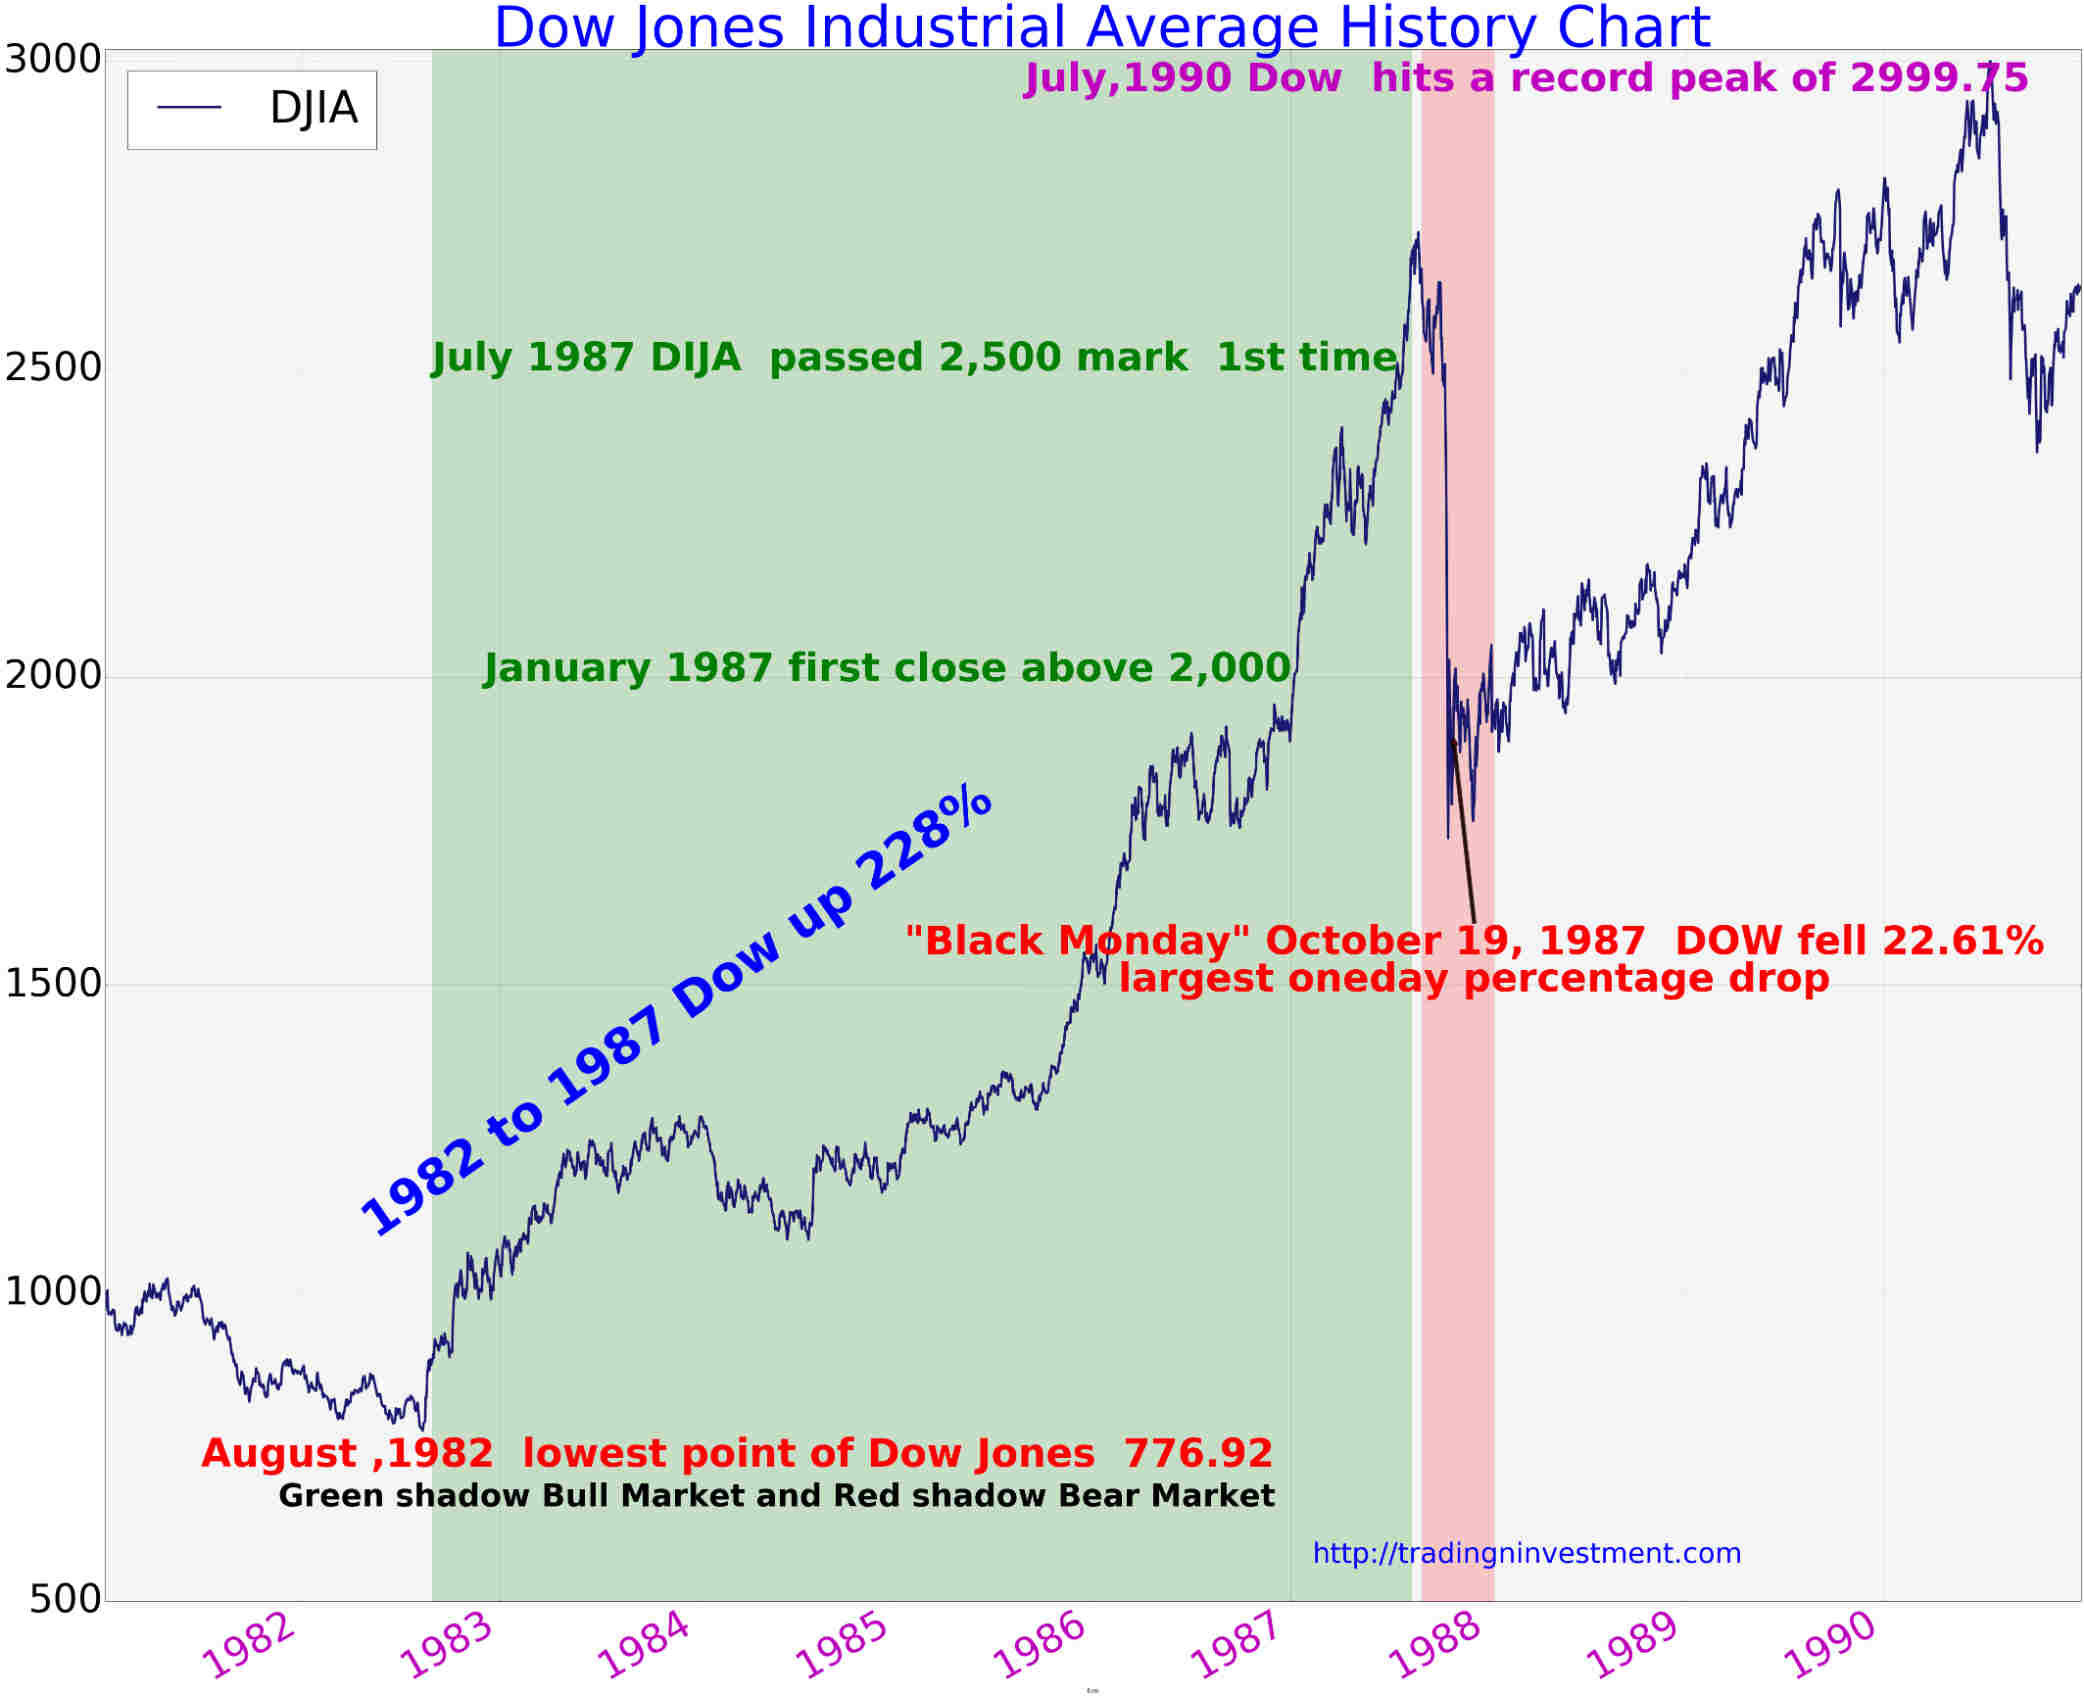 Dow jones industrial average history chart 1981 to 1990